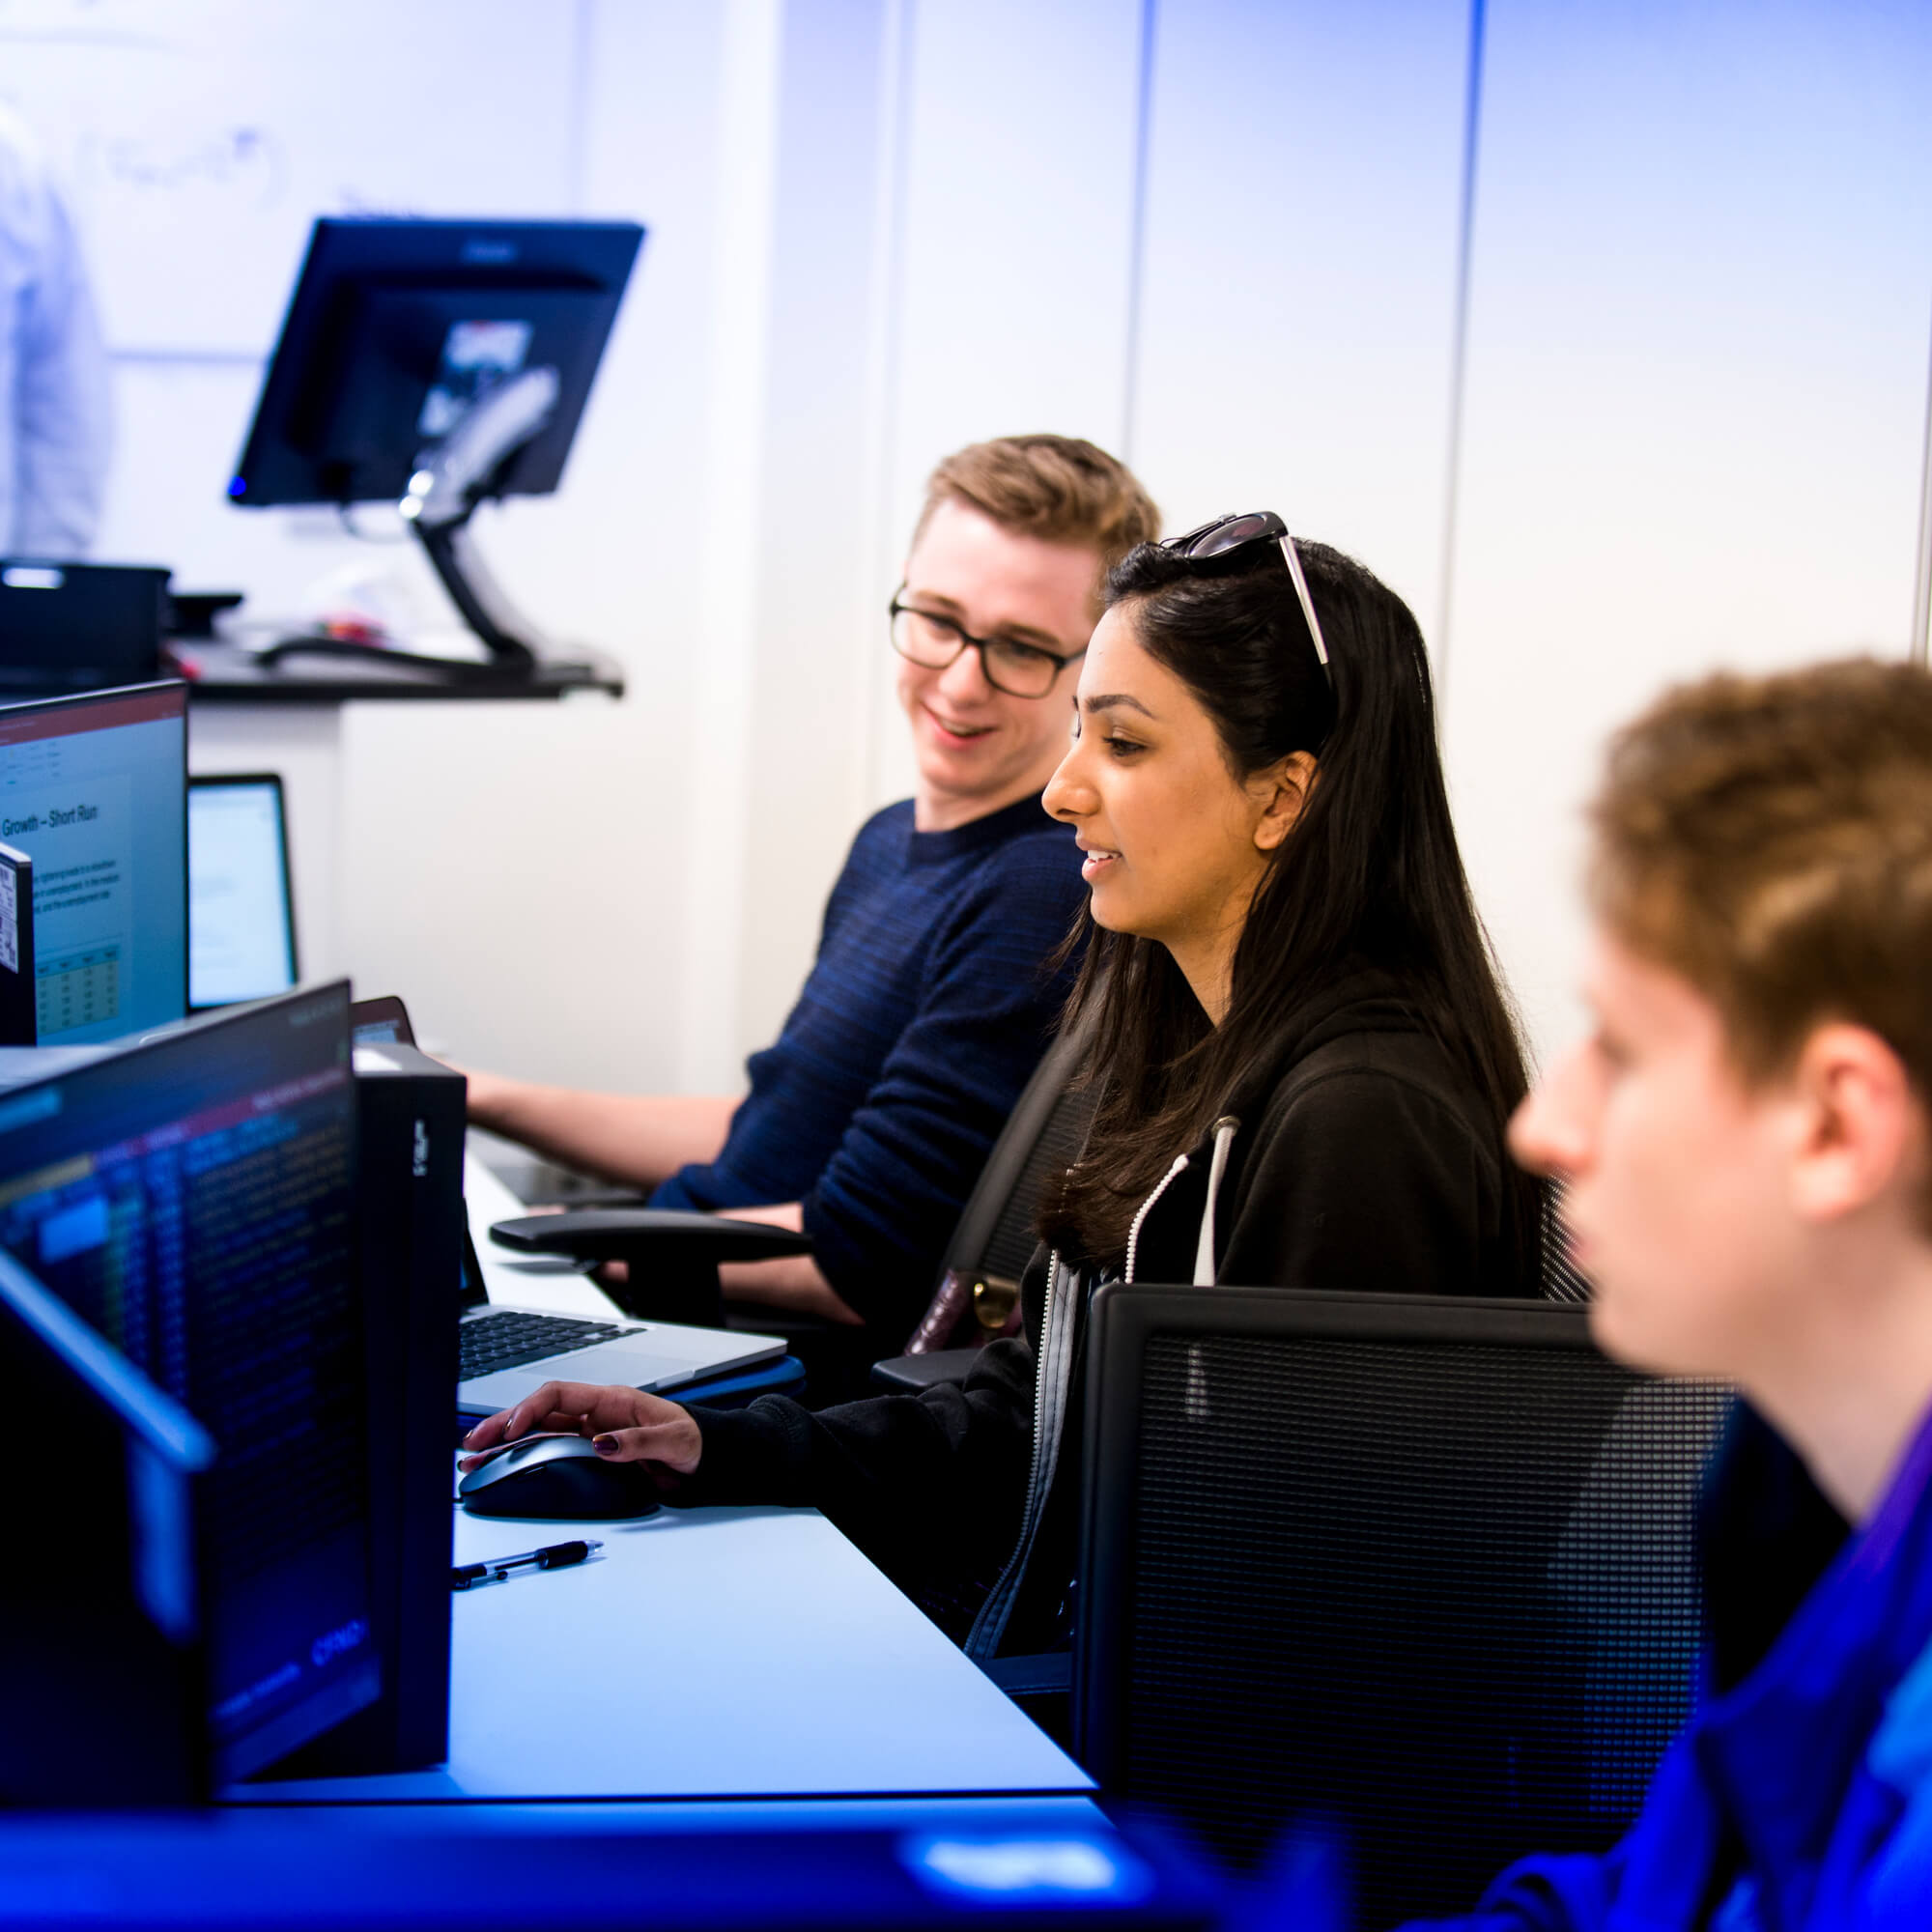 Students working at computers in the University's Bloomberg Suite